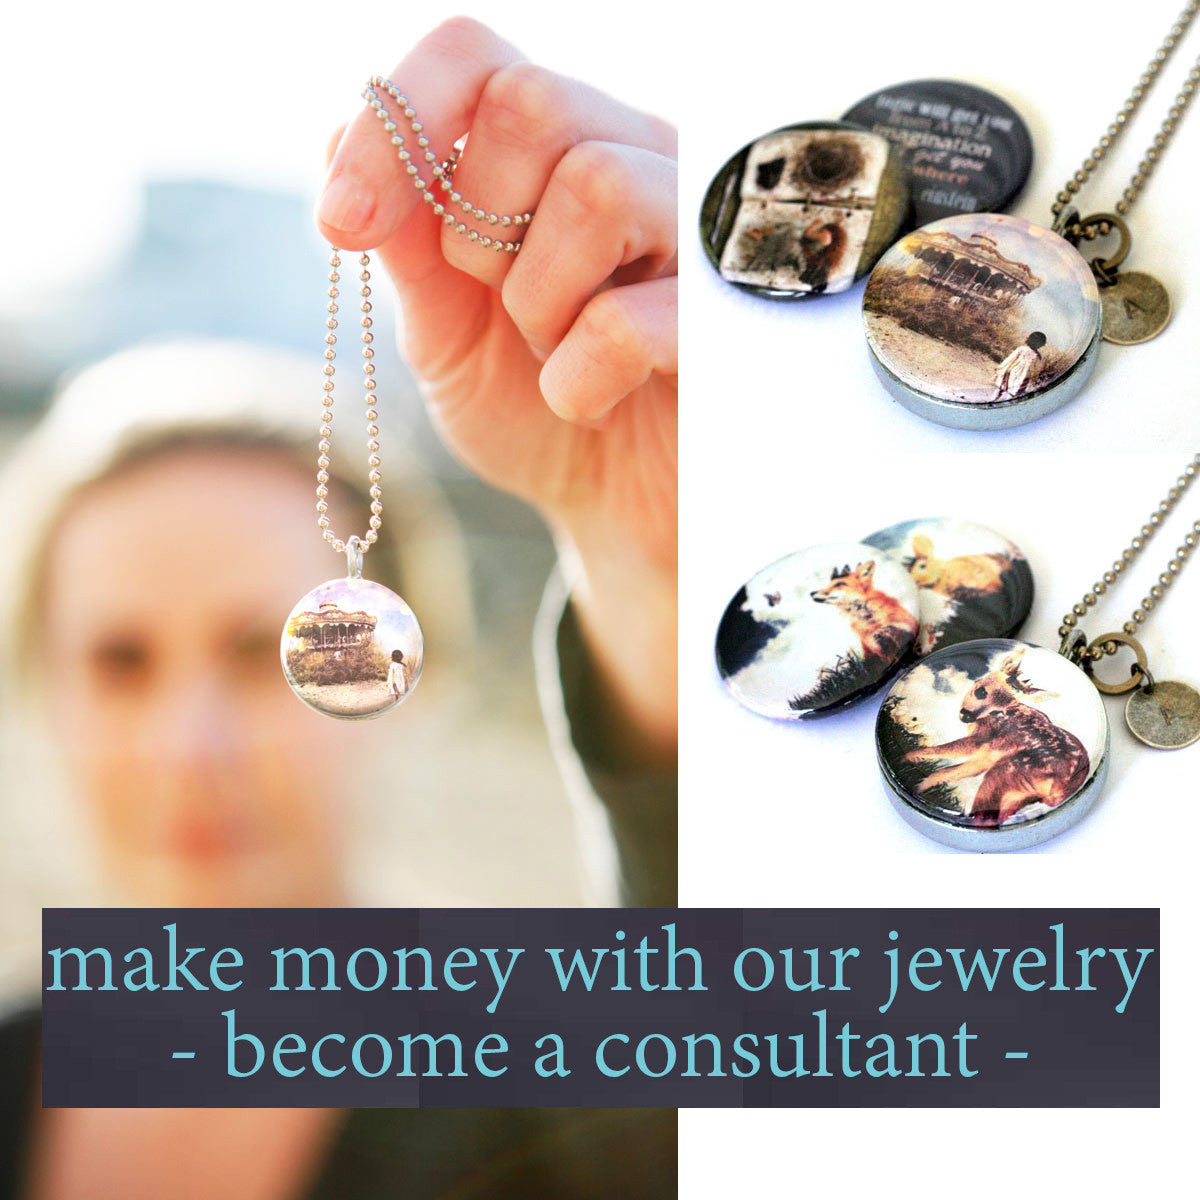 become a consultant